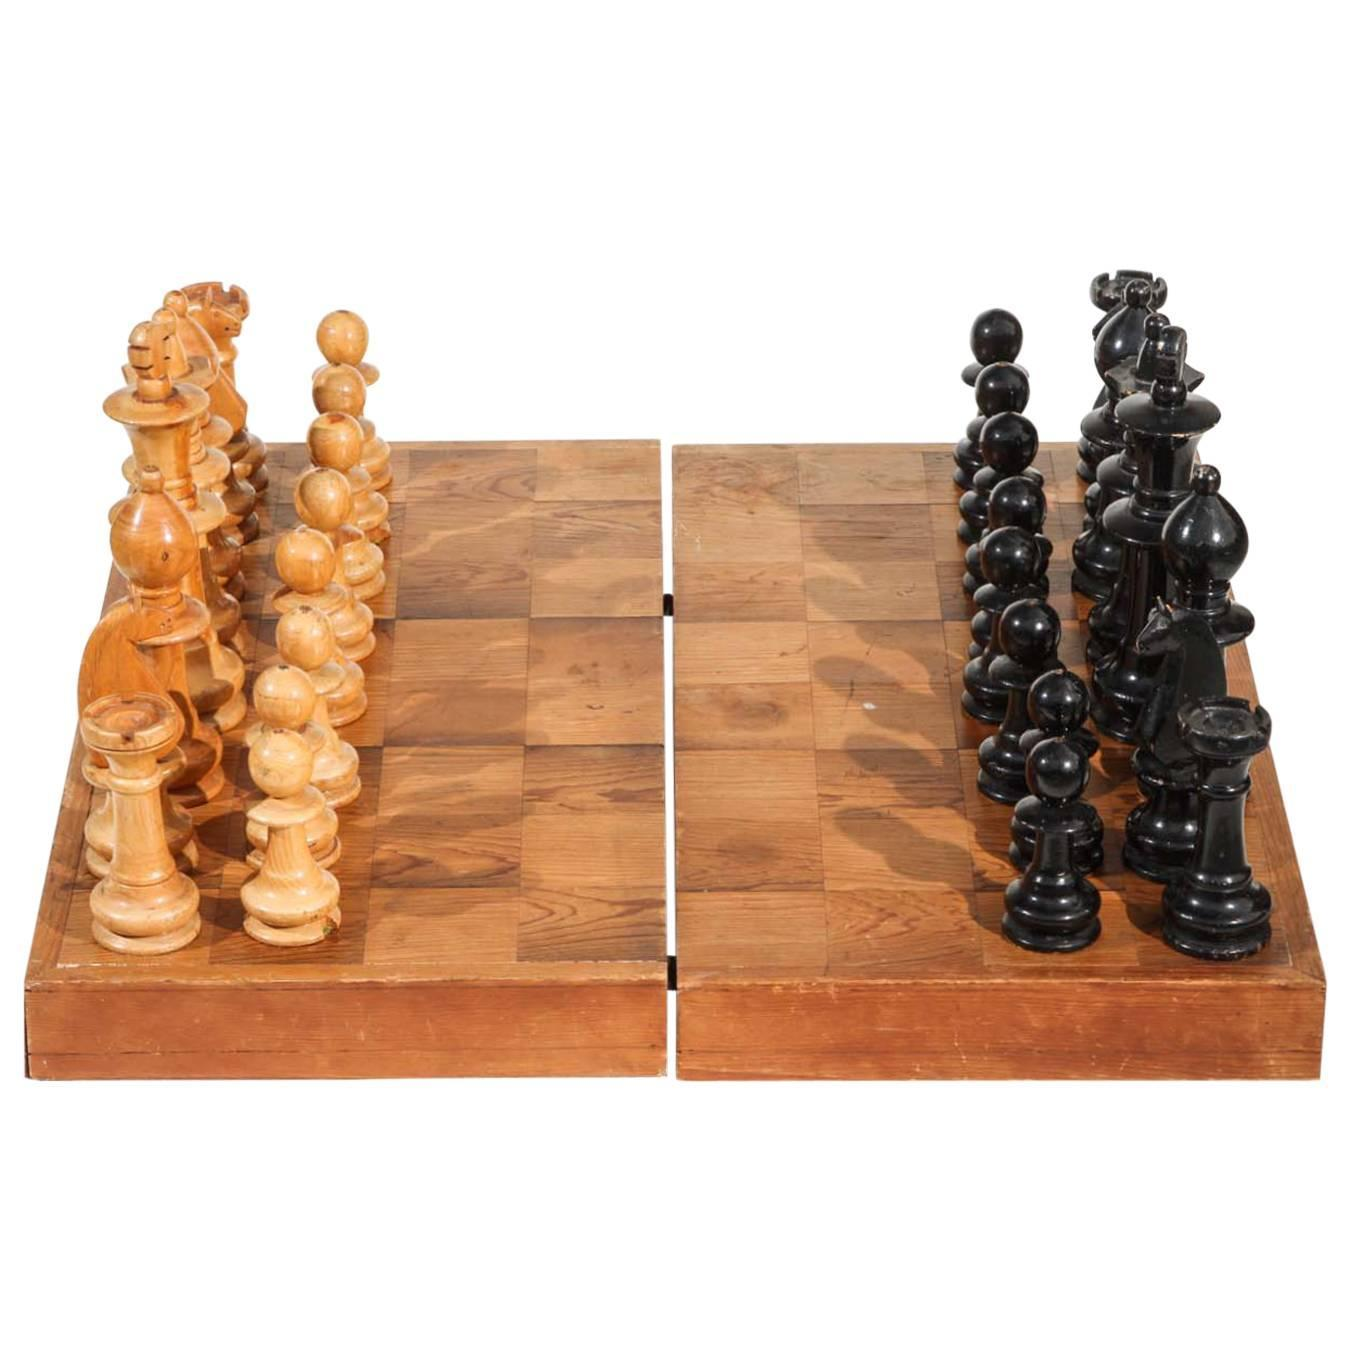 Vintage chess set for sale at 1stdibs - Ceramic chess sets for sale ...